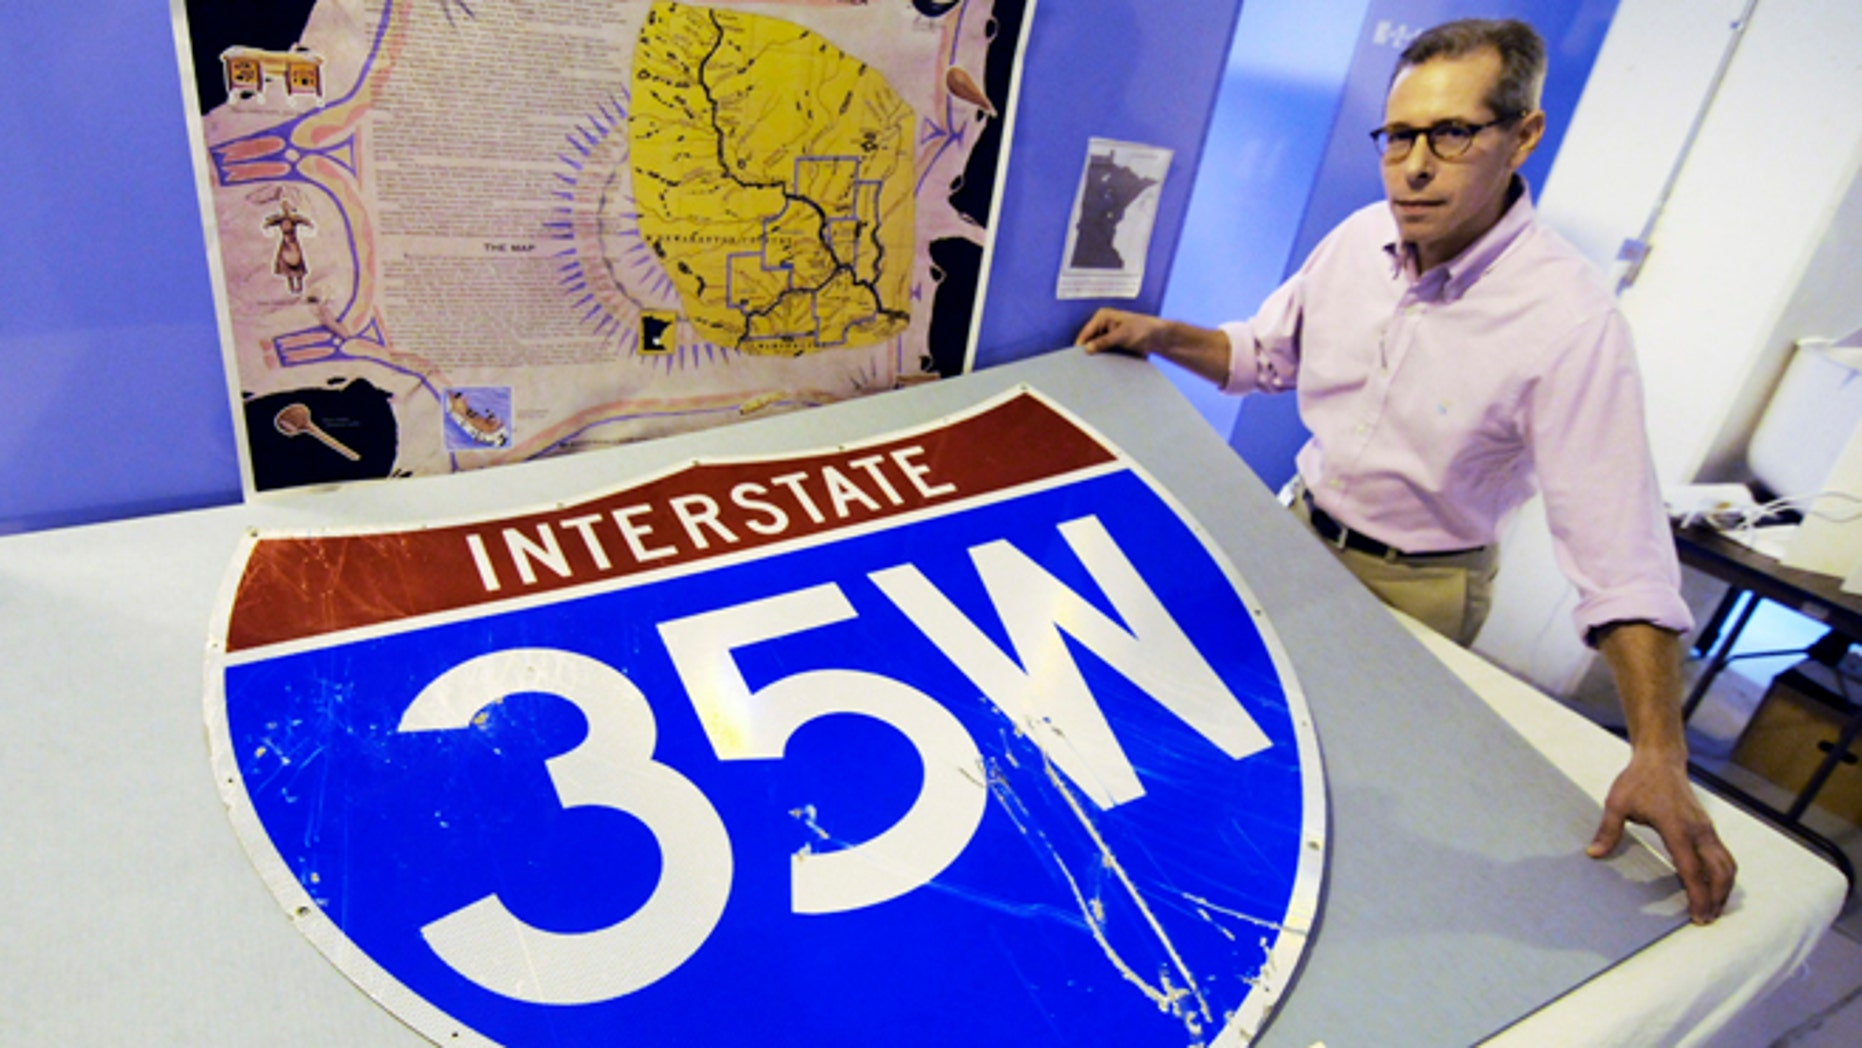 Thursday, July 26, 2012: In this photo in St. Paul, Minn., Minnesota History Center senior curator Adam Scher shows the bridge highway sign, one of the collection of artifacts at the History Center from the Aug. 1, 2007 Interstate 35W bridge collapse in Minneapolis.